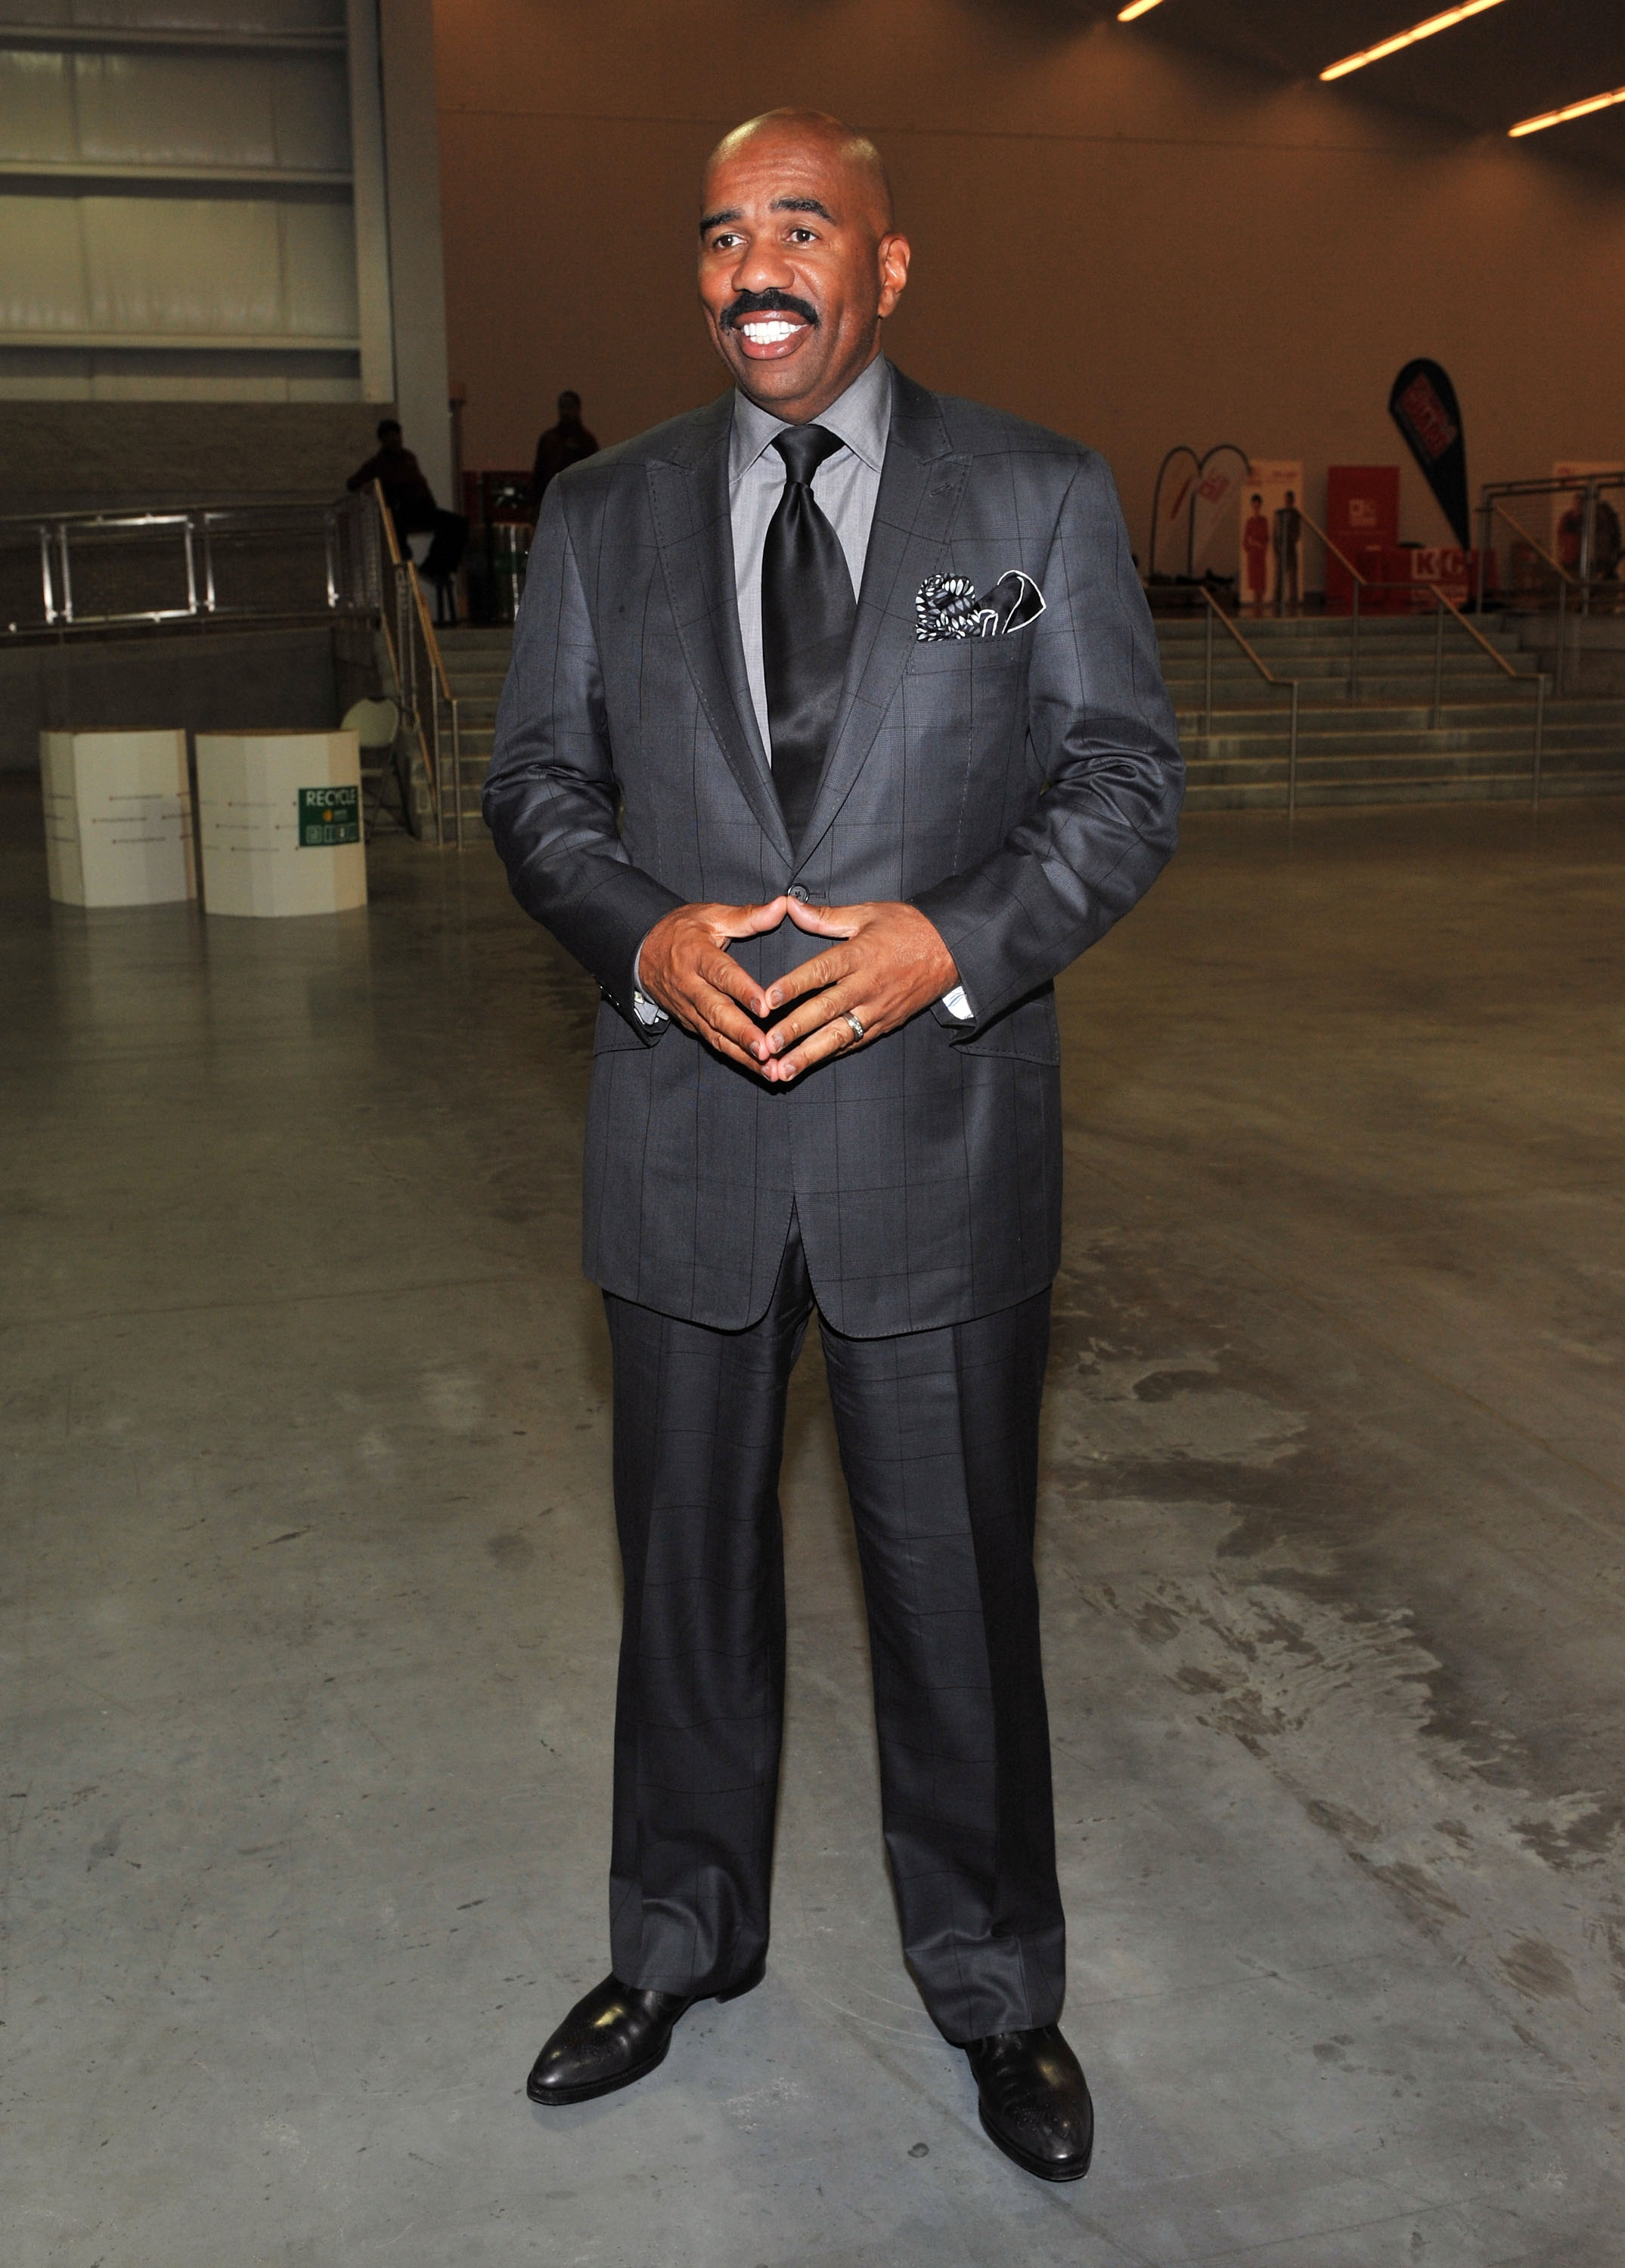 Steve Harvey attends the Steve Harvey Mentoring Weekend in New York City on October 7, 2011 | Photo: Getty Images